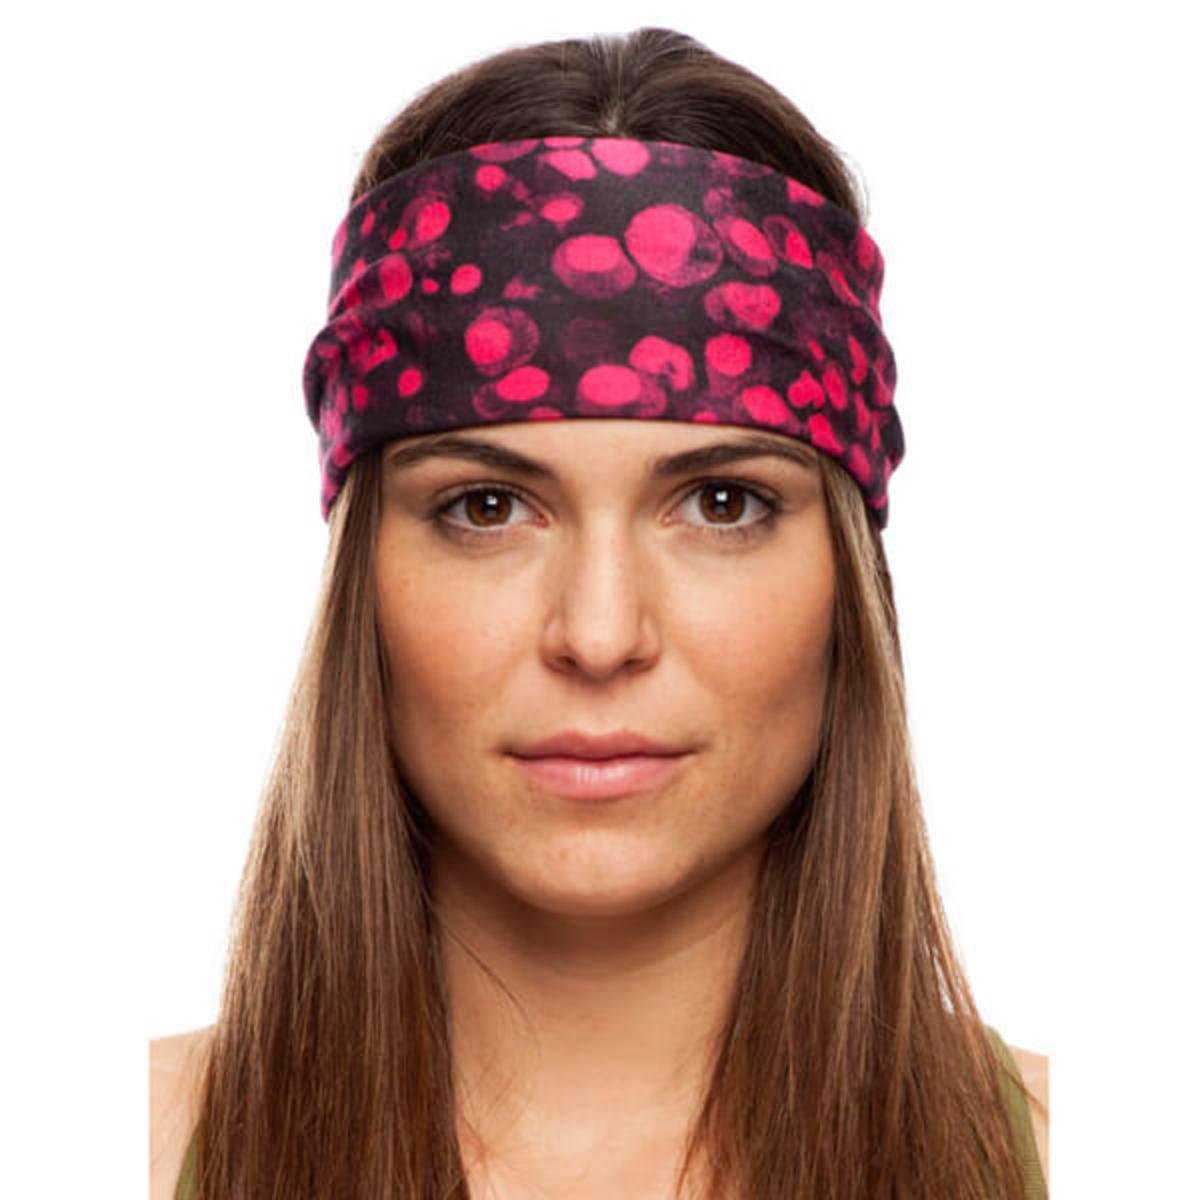 official store 100% authentic cheap for sale Buff UV Headband - Henna - The Warming Store